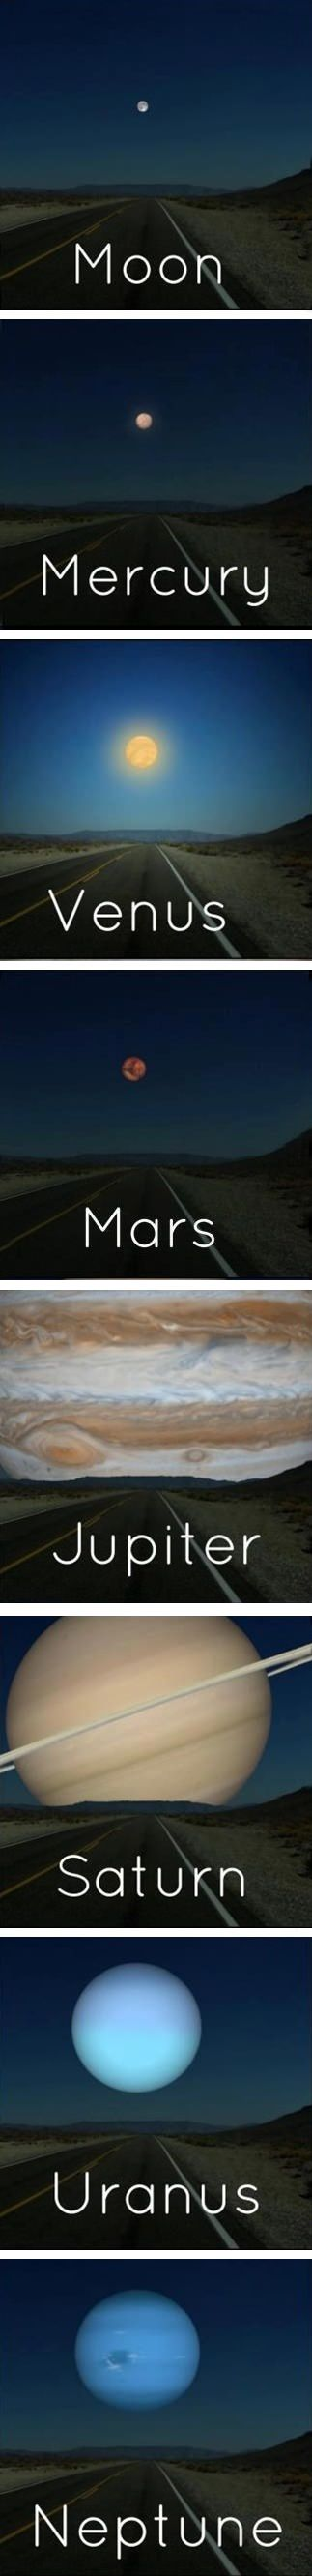 What it would look like if the other planets were as close to Earth as the moon is.